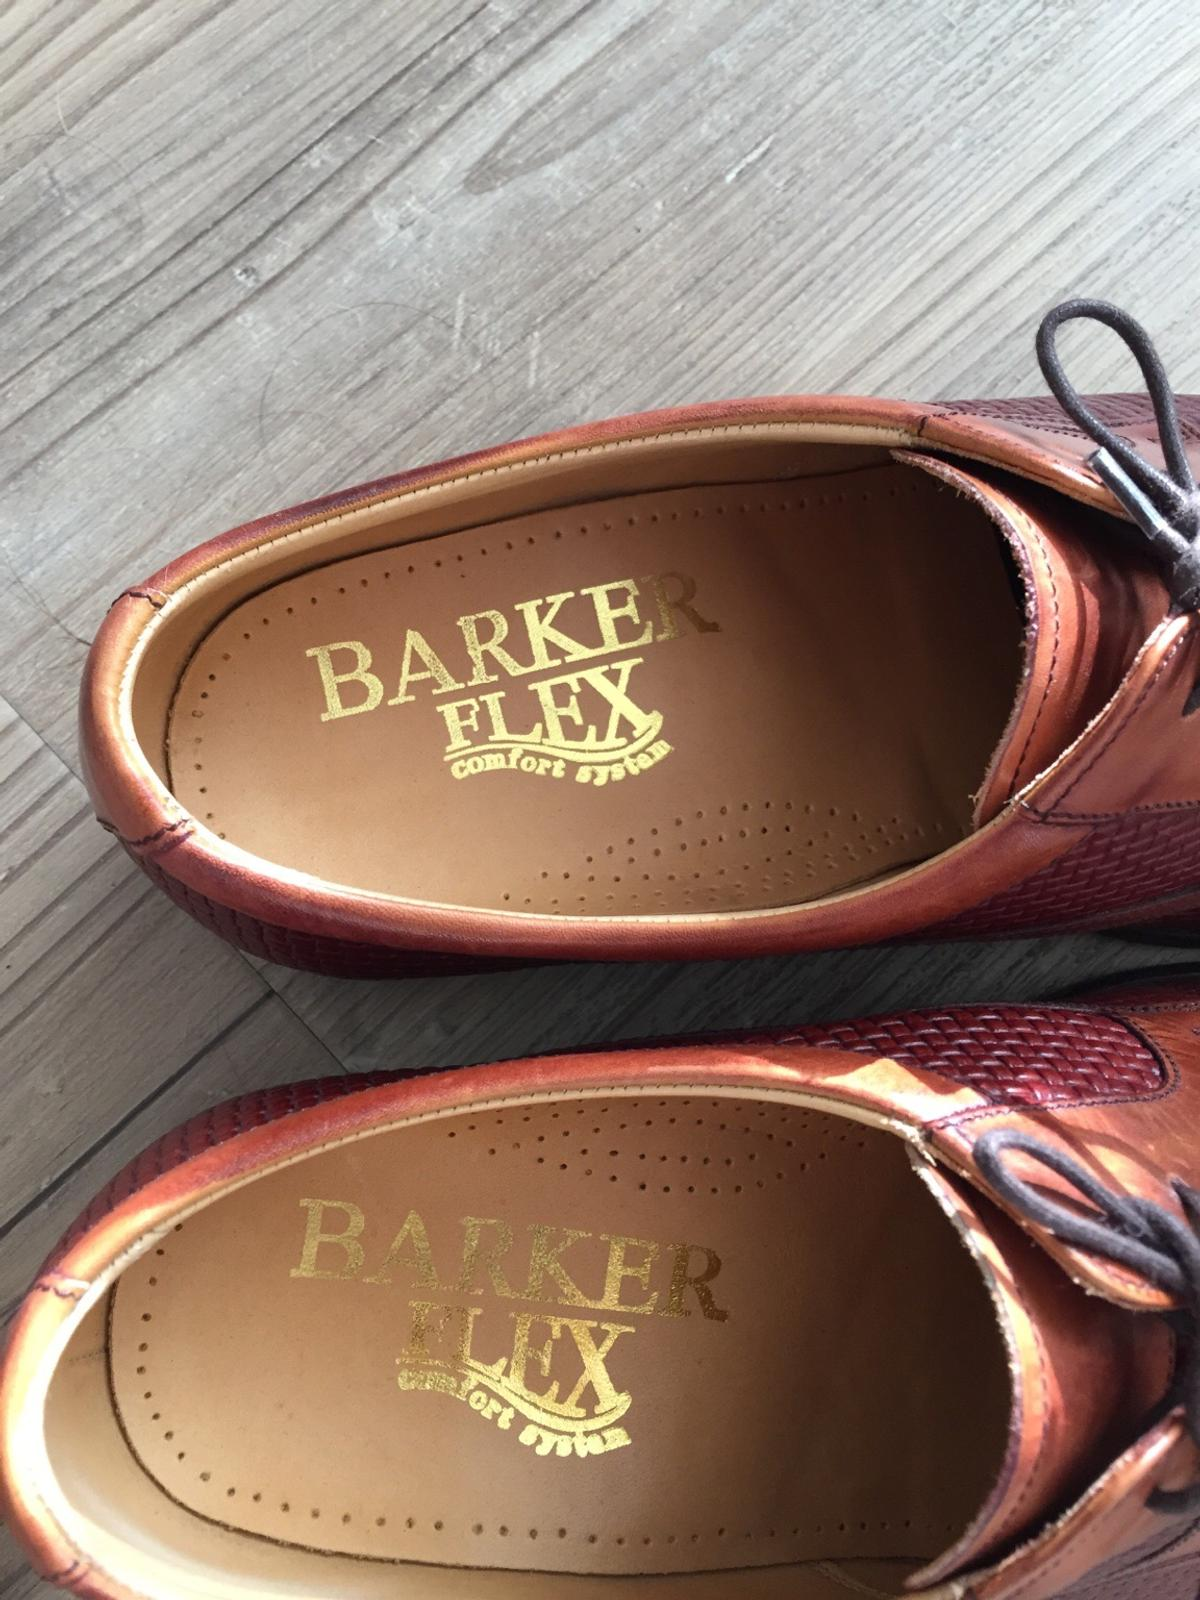 aa0e41b5 barker flex system shoes 10G in MK43 Wootton for £79.00 for sale ...